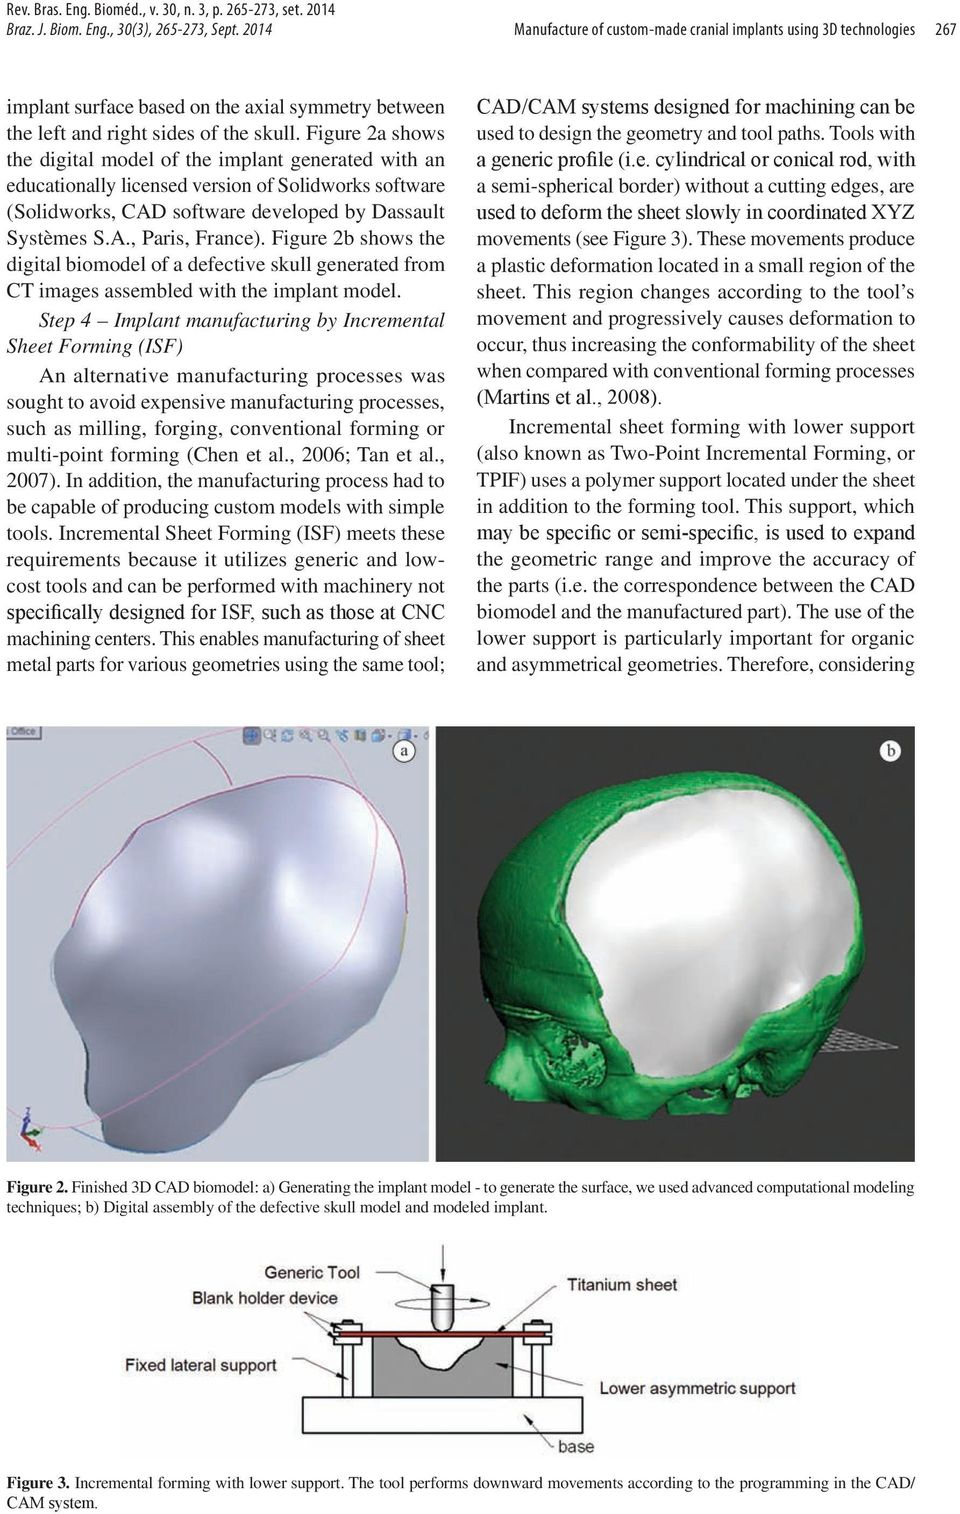 Figure 2a shows the digital model of the implant generated with an educationally licensed version of Solidworks software (Solidworks, CAD software developed by Dassault Systèmes S.A., Paris, France).